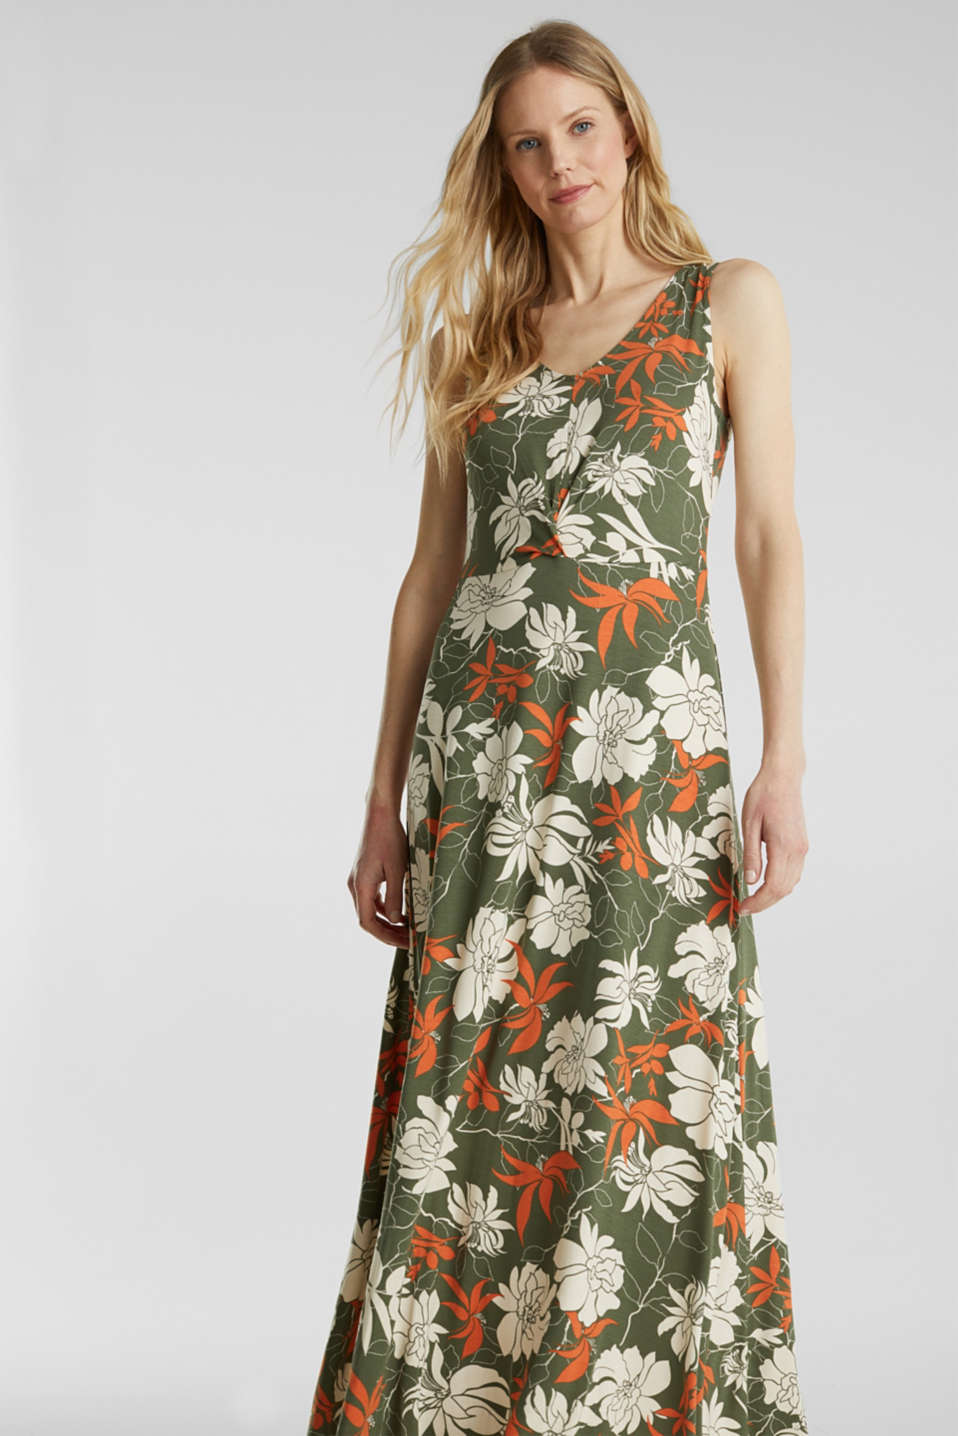 Esprit - Maxi dress made of jersey with a floral print